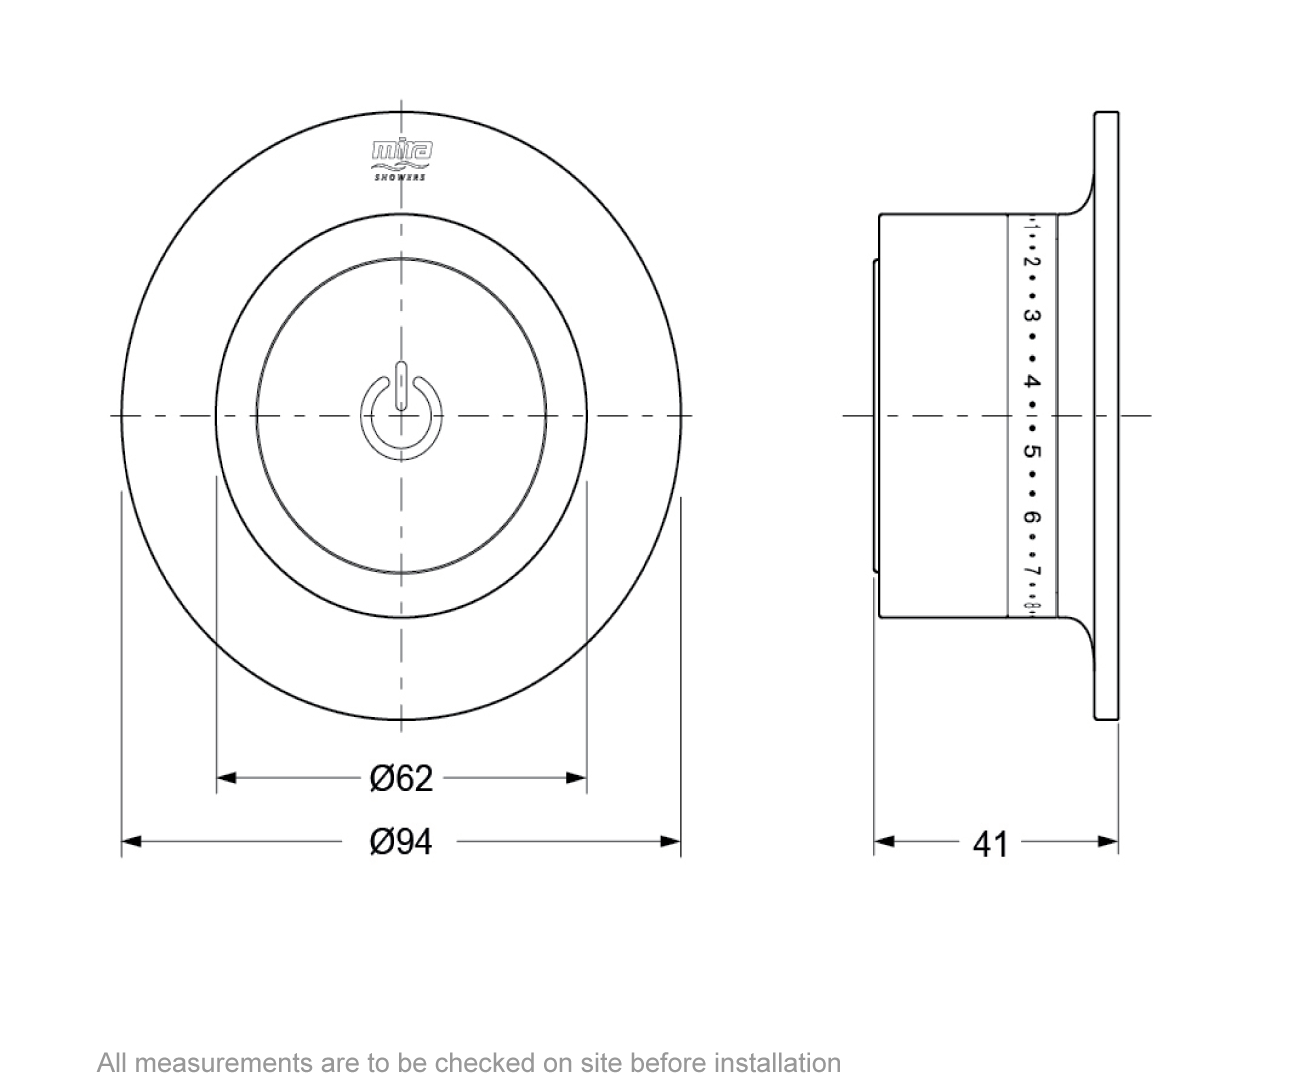 Dimensions for Mira Mode digital bath filler pumped